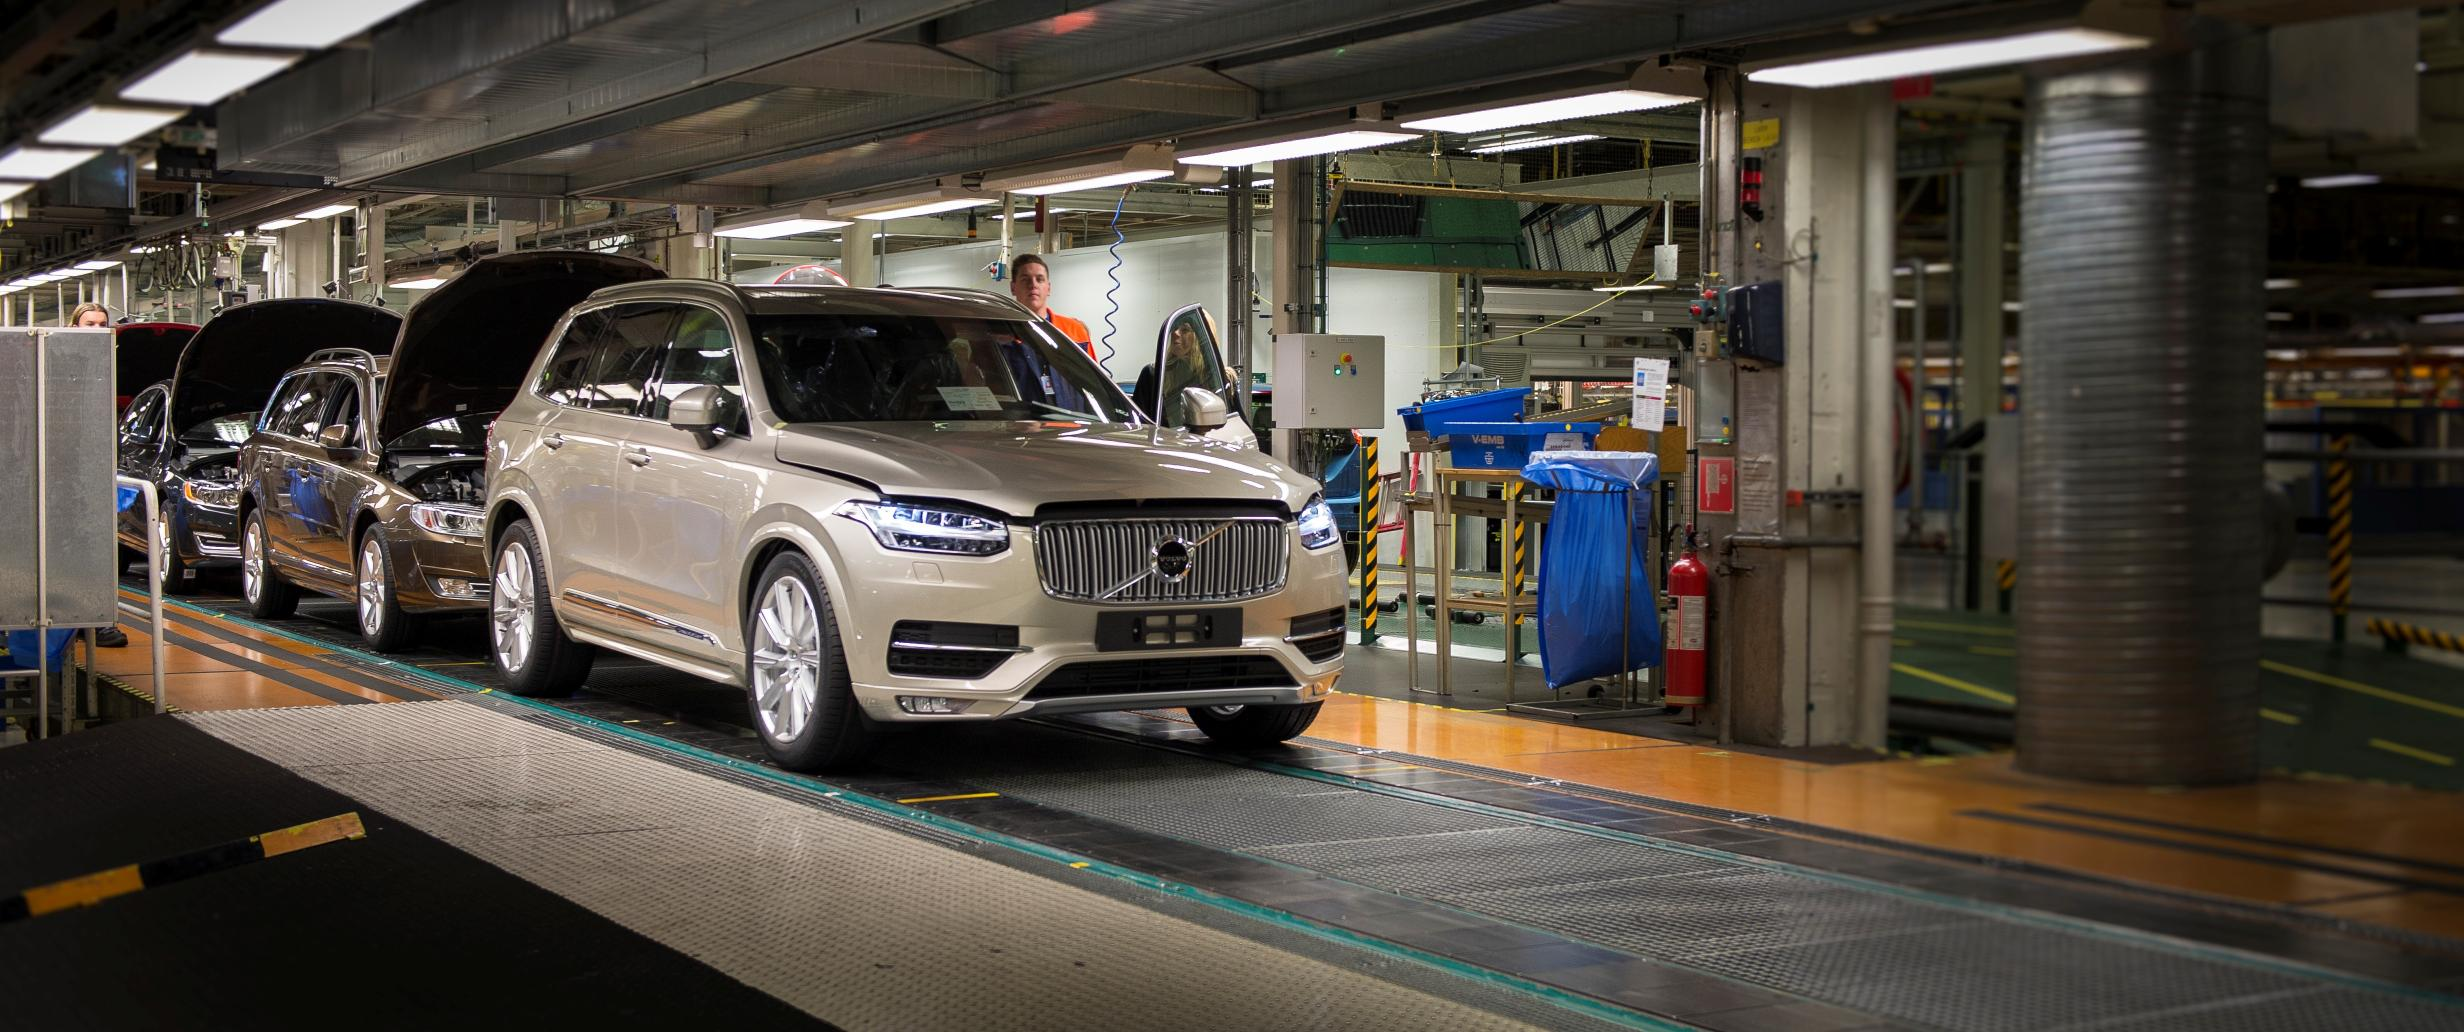 Volvo Opening First US Factory in South Carolina: Production Will Start in 2018 - autoevolution